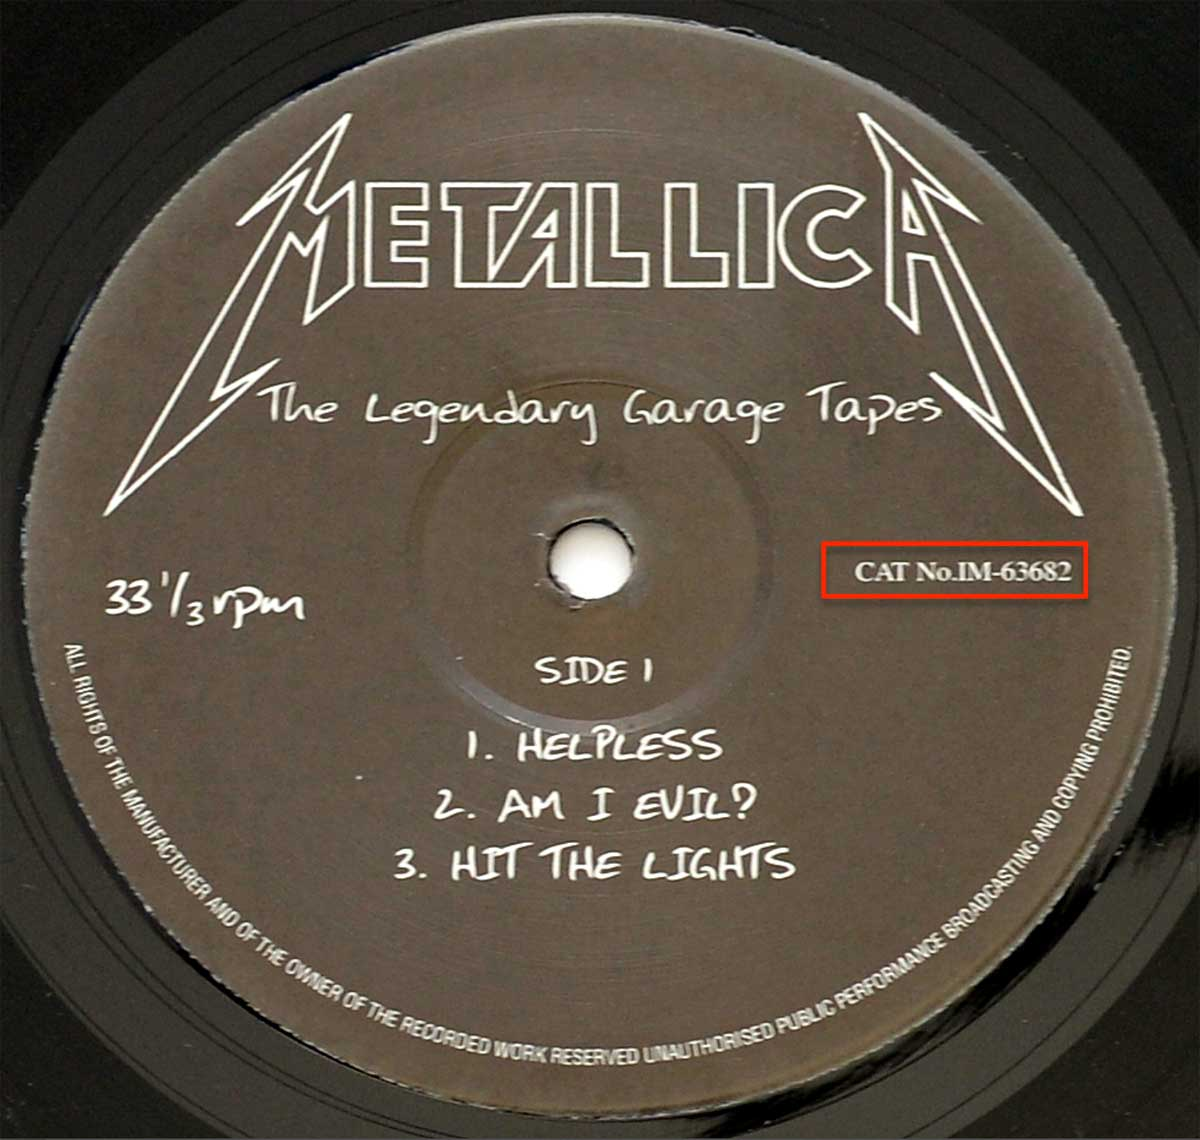 Photo of record 1 of METALLICA - The legendary Garage Tapes ( Unofficial Record )